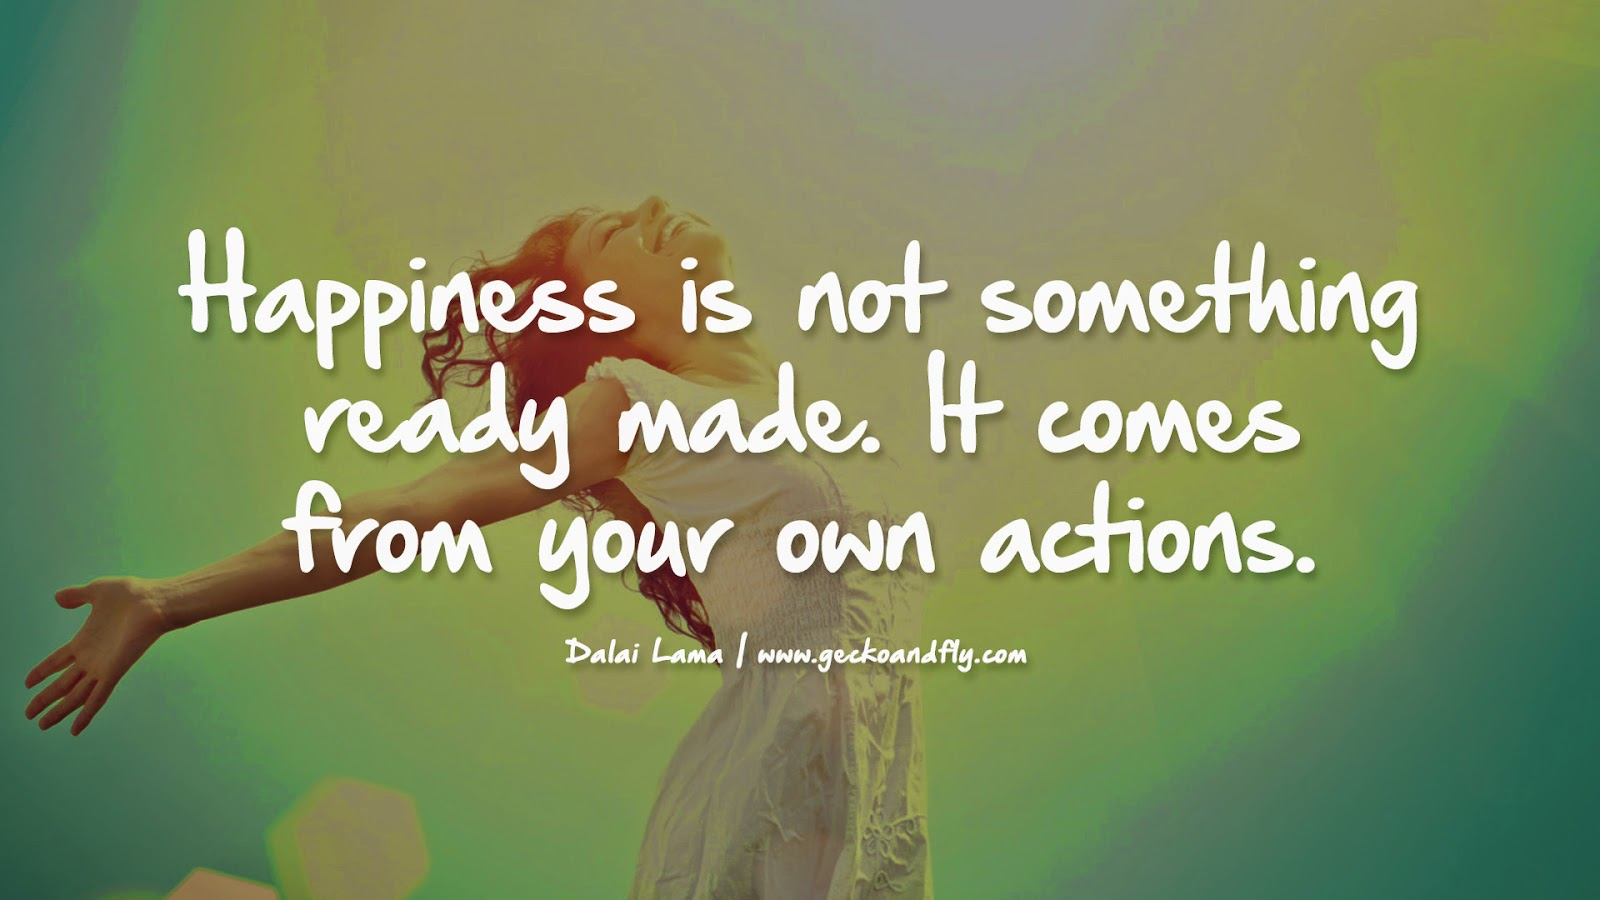 Happiness Quotes: Happiness Quotes By Famous People. QuotesGram